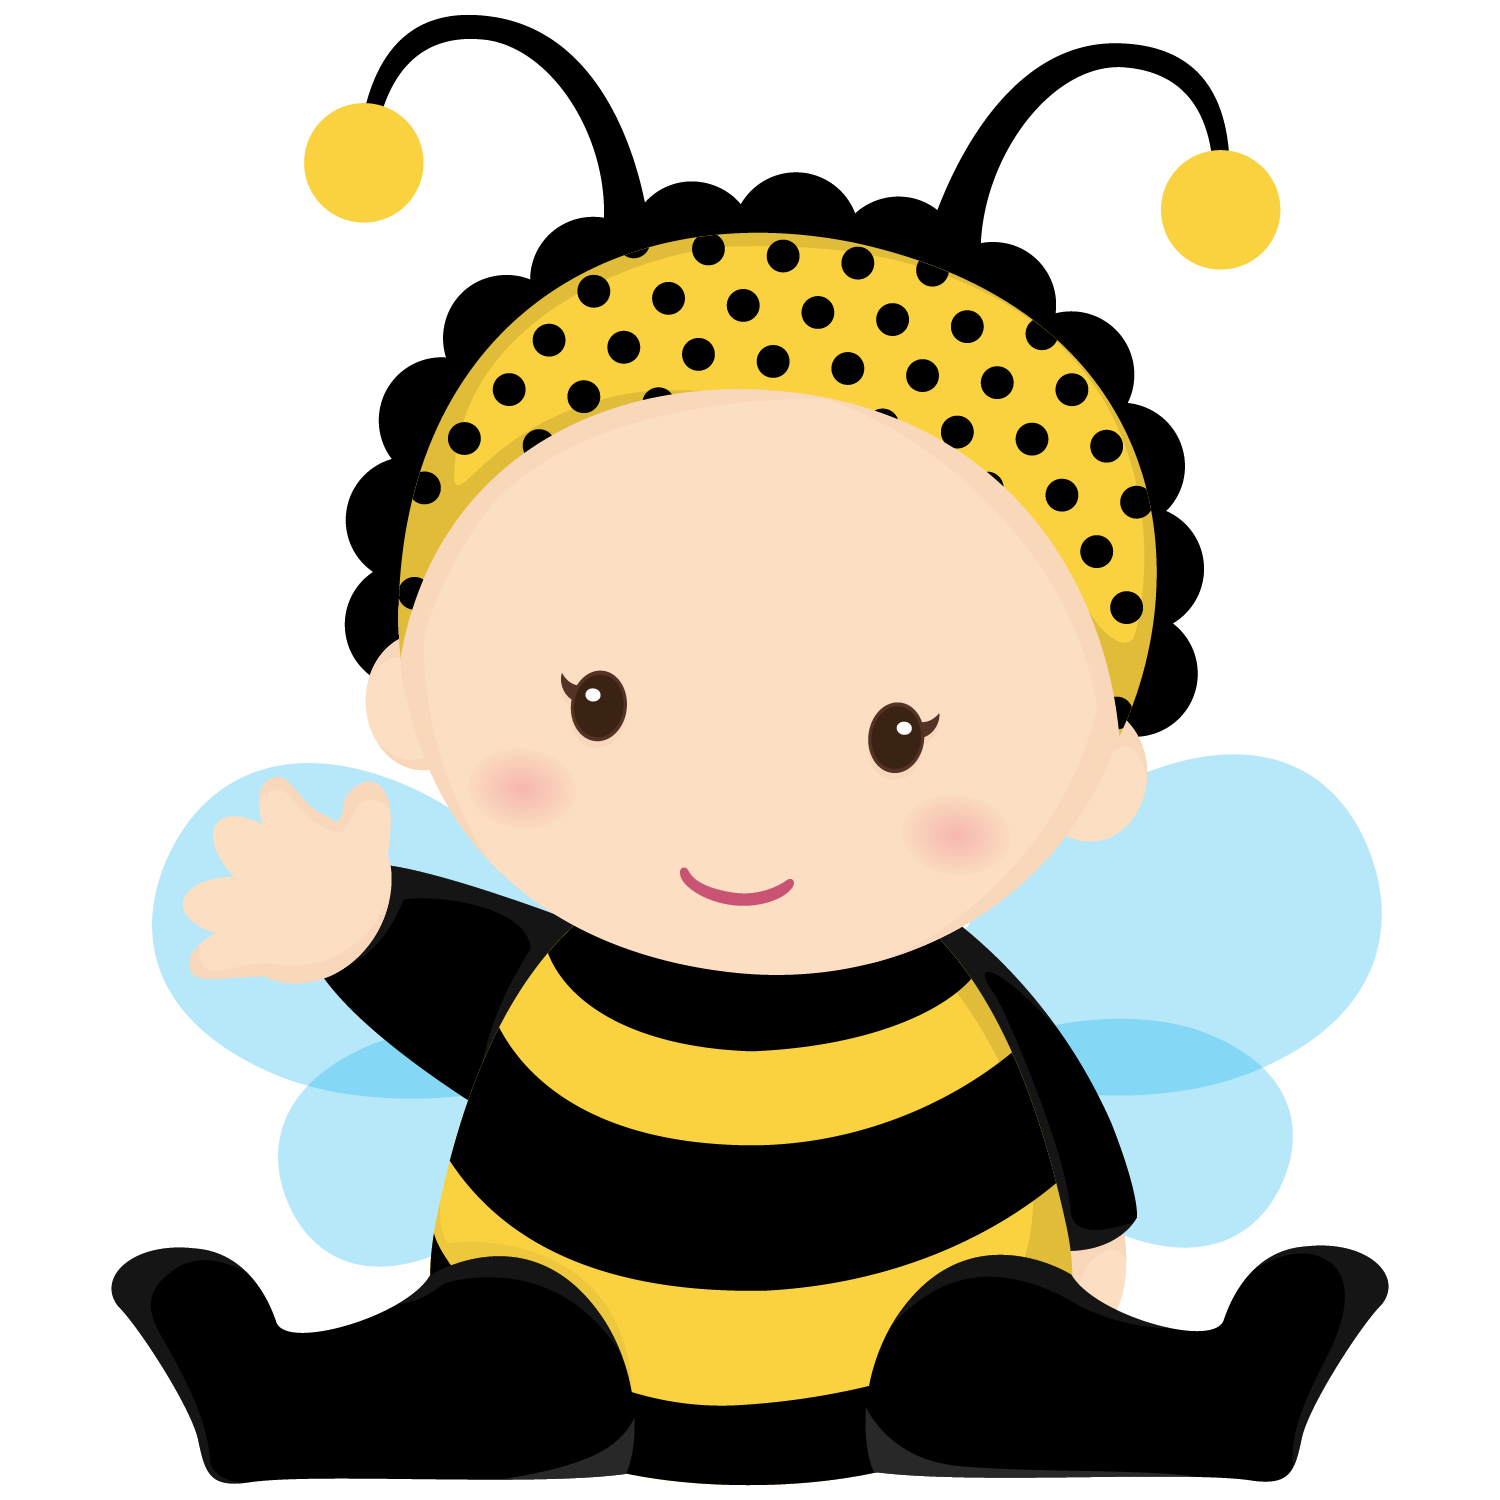 Queen clipart baby. Pin by crina gabrian